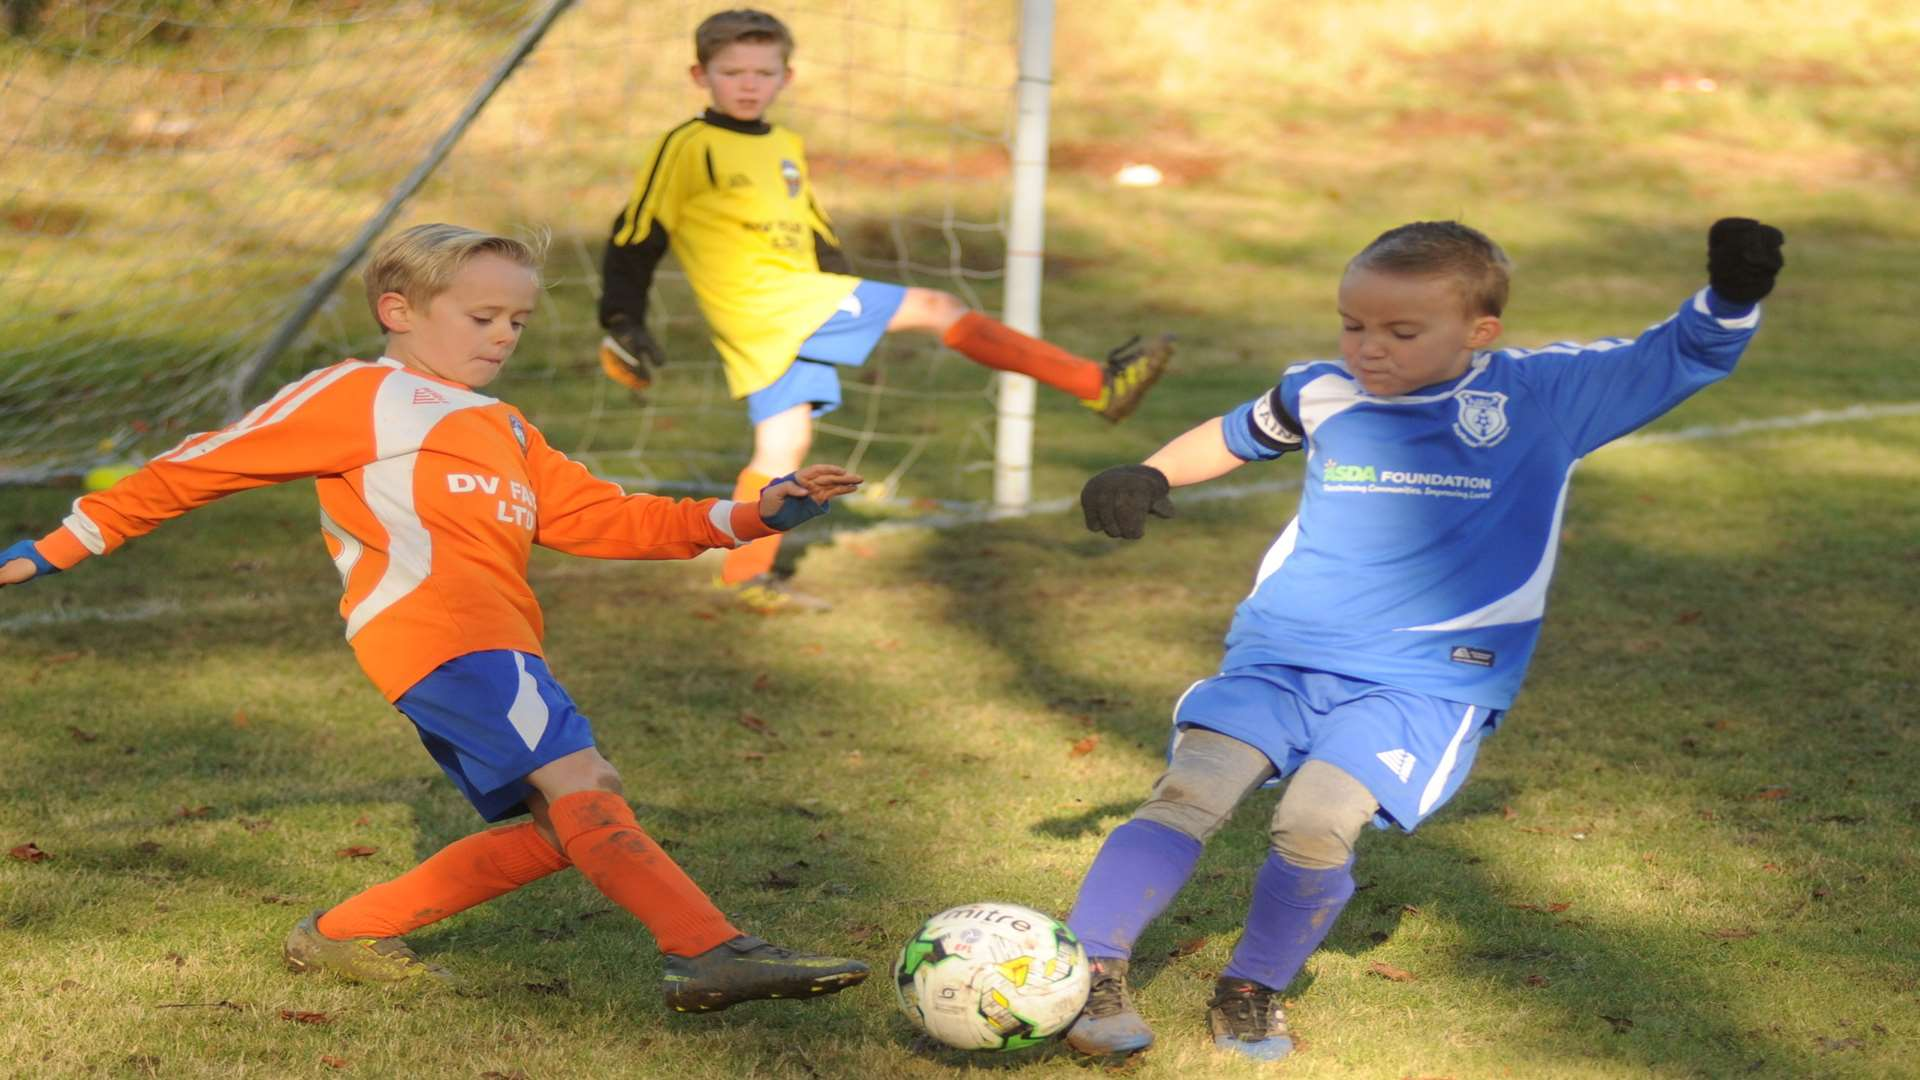 Cuxton 91 Scorpions under-8s and New Road Giants under-8s contest possession Picture: Steve Crispe